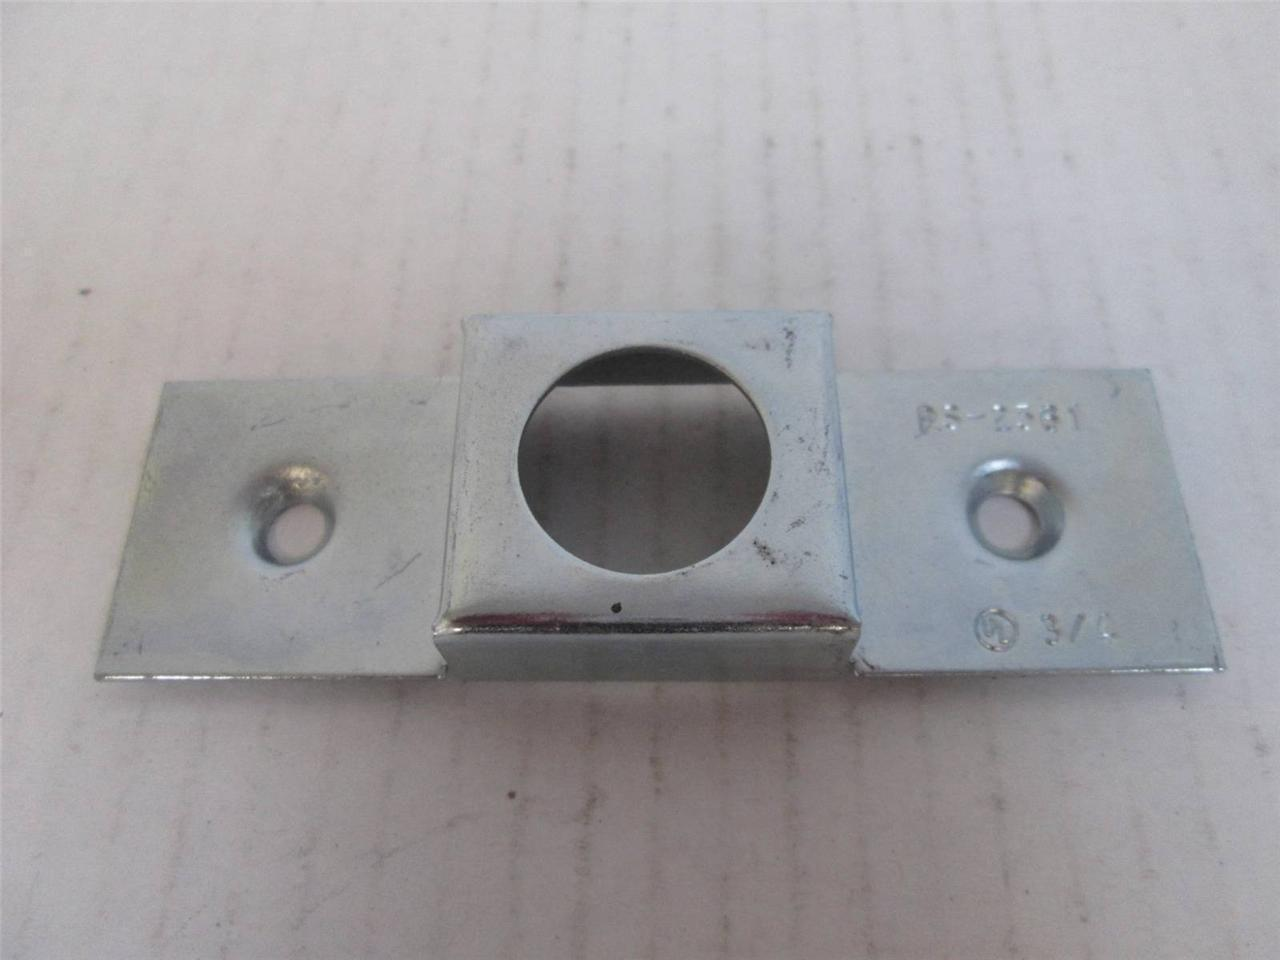 """Tyco/Superstrut PS 2561 3/4 EG 3/4"""" Conduit Connector Fitting - Box of 25"""